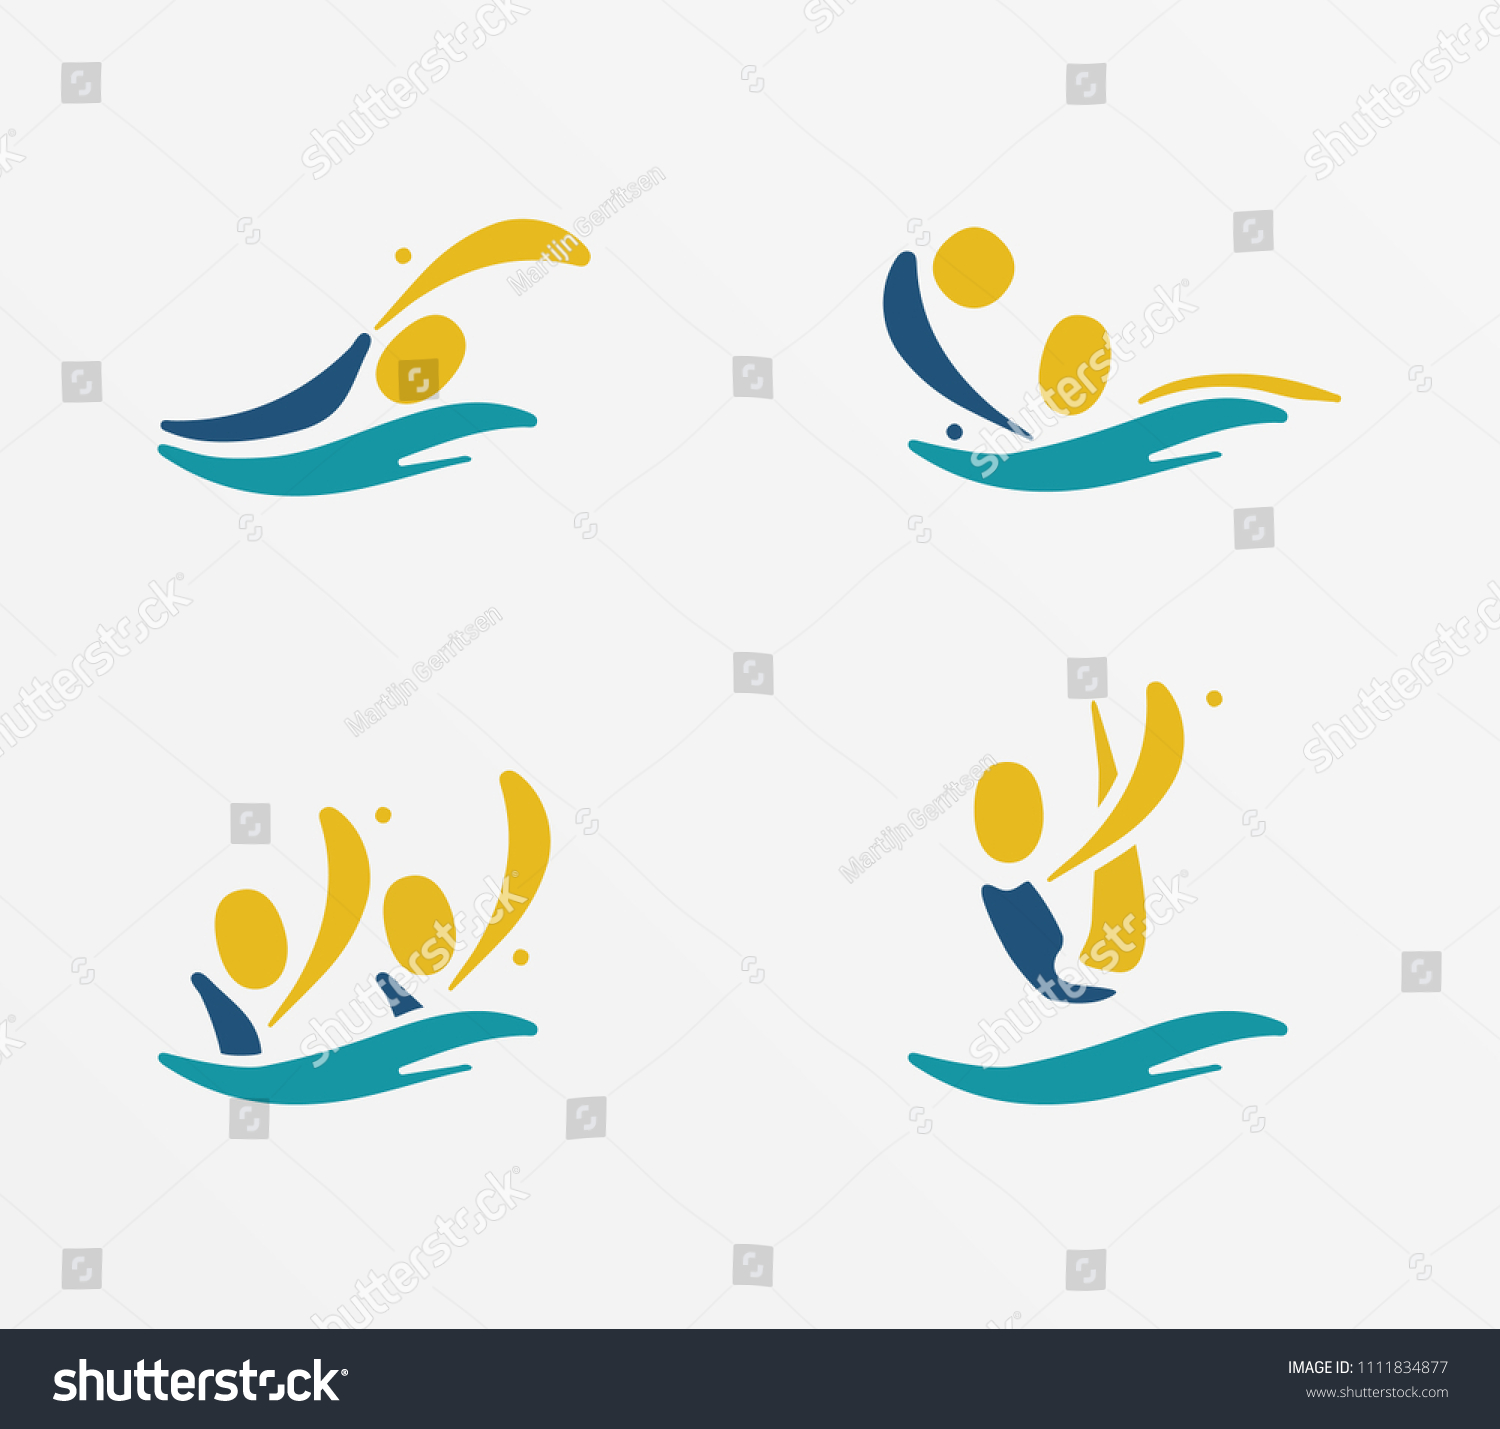 Sports Clipart - Free Water Sports to Download